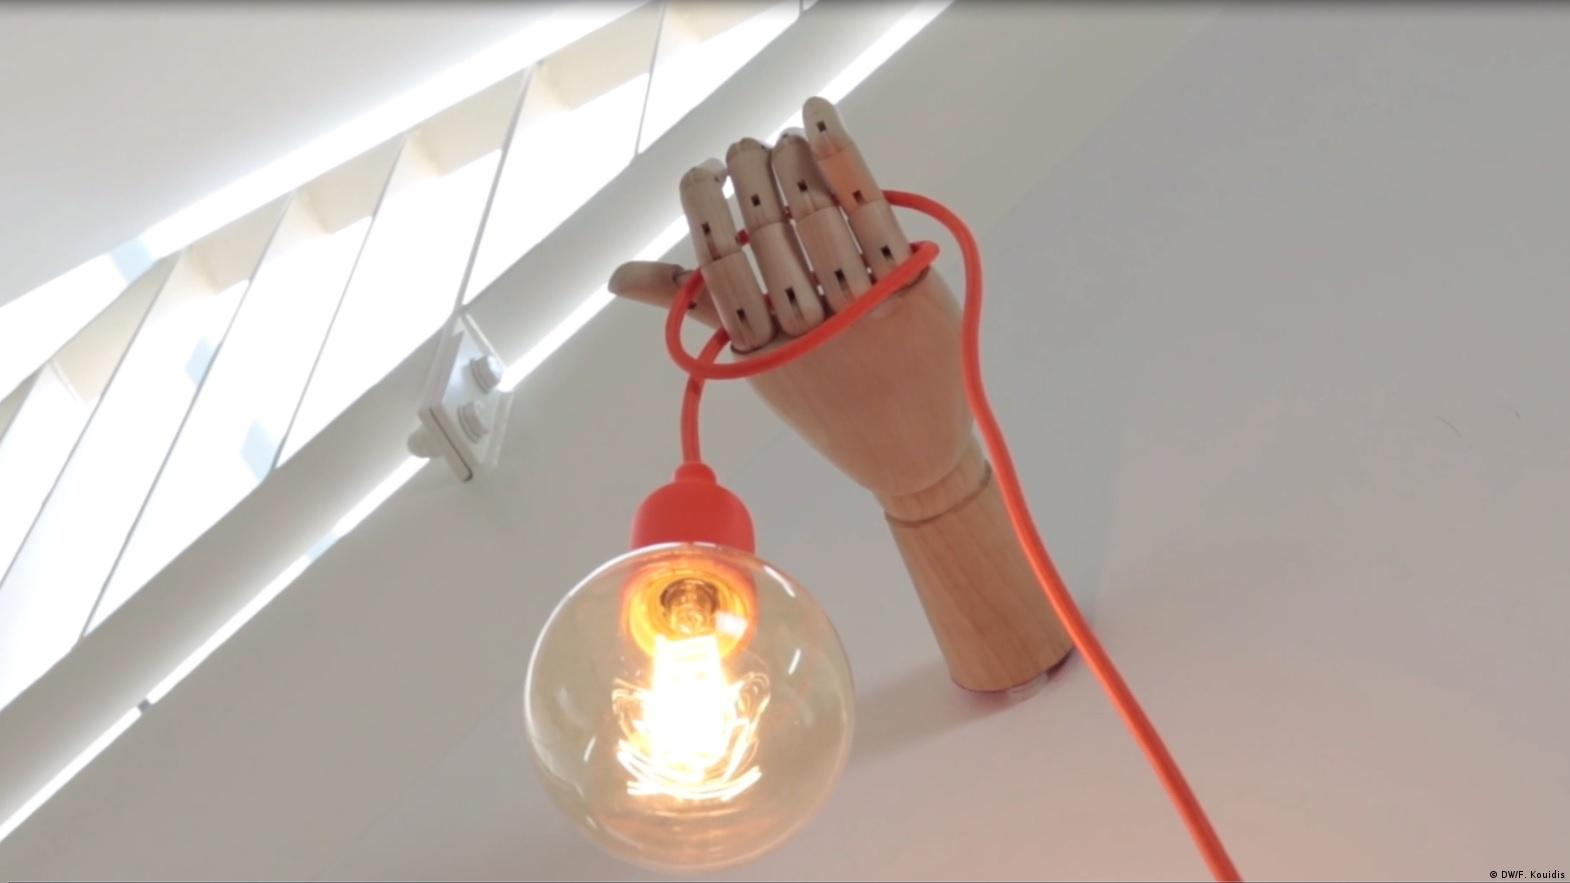 Instructions On How To Make A Wooden Hand Lamp